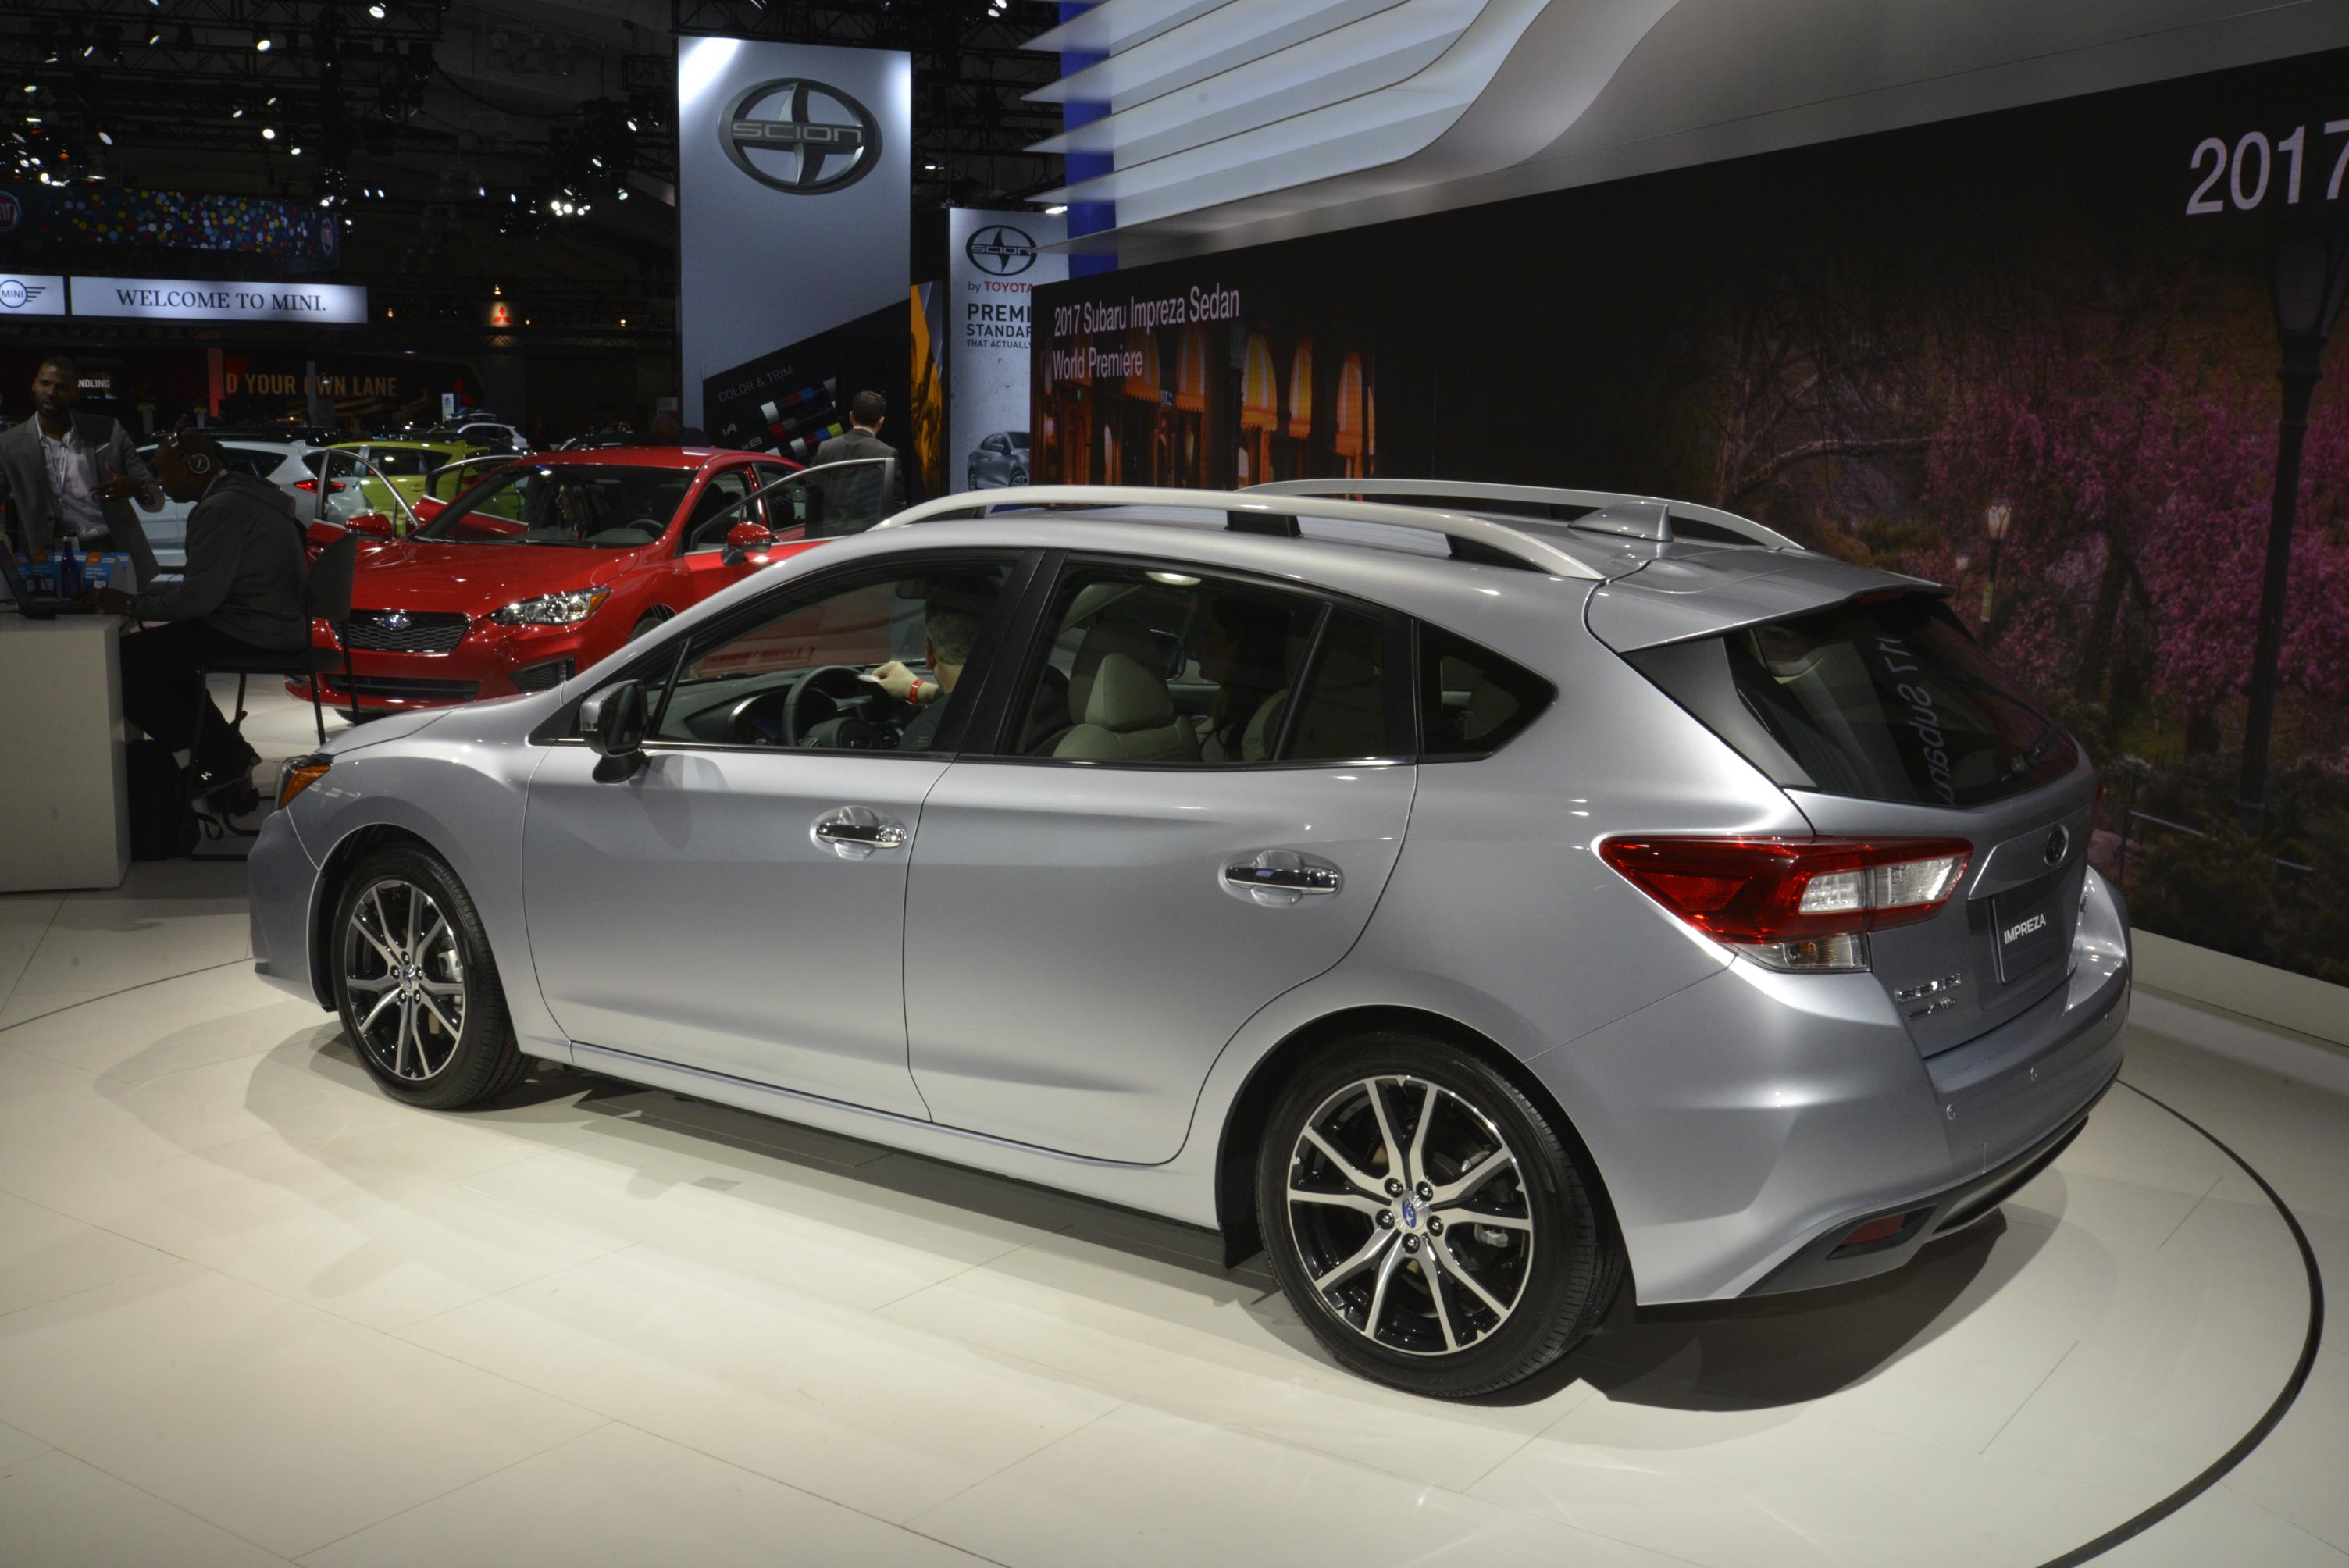 2017 Subaru Impreza Launched In Japan, Comes With Plenty of Safety